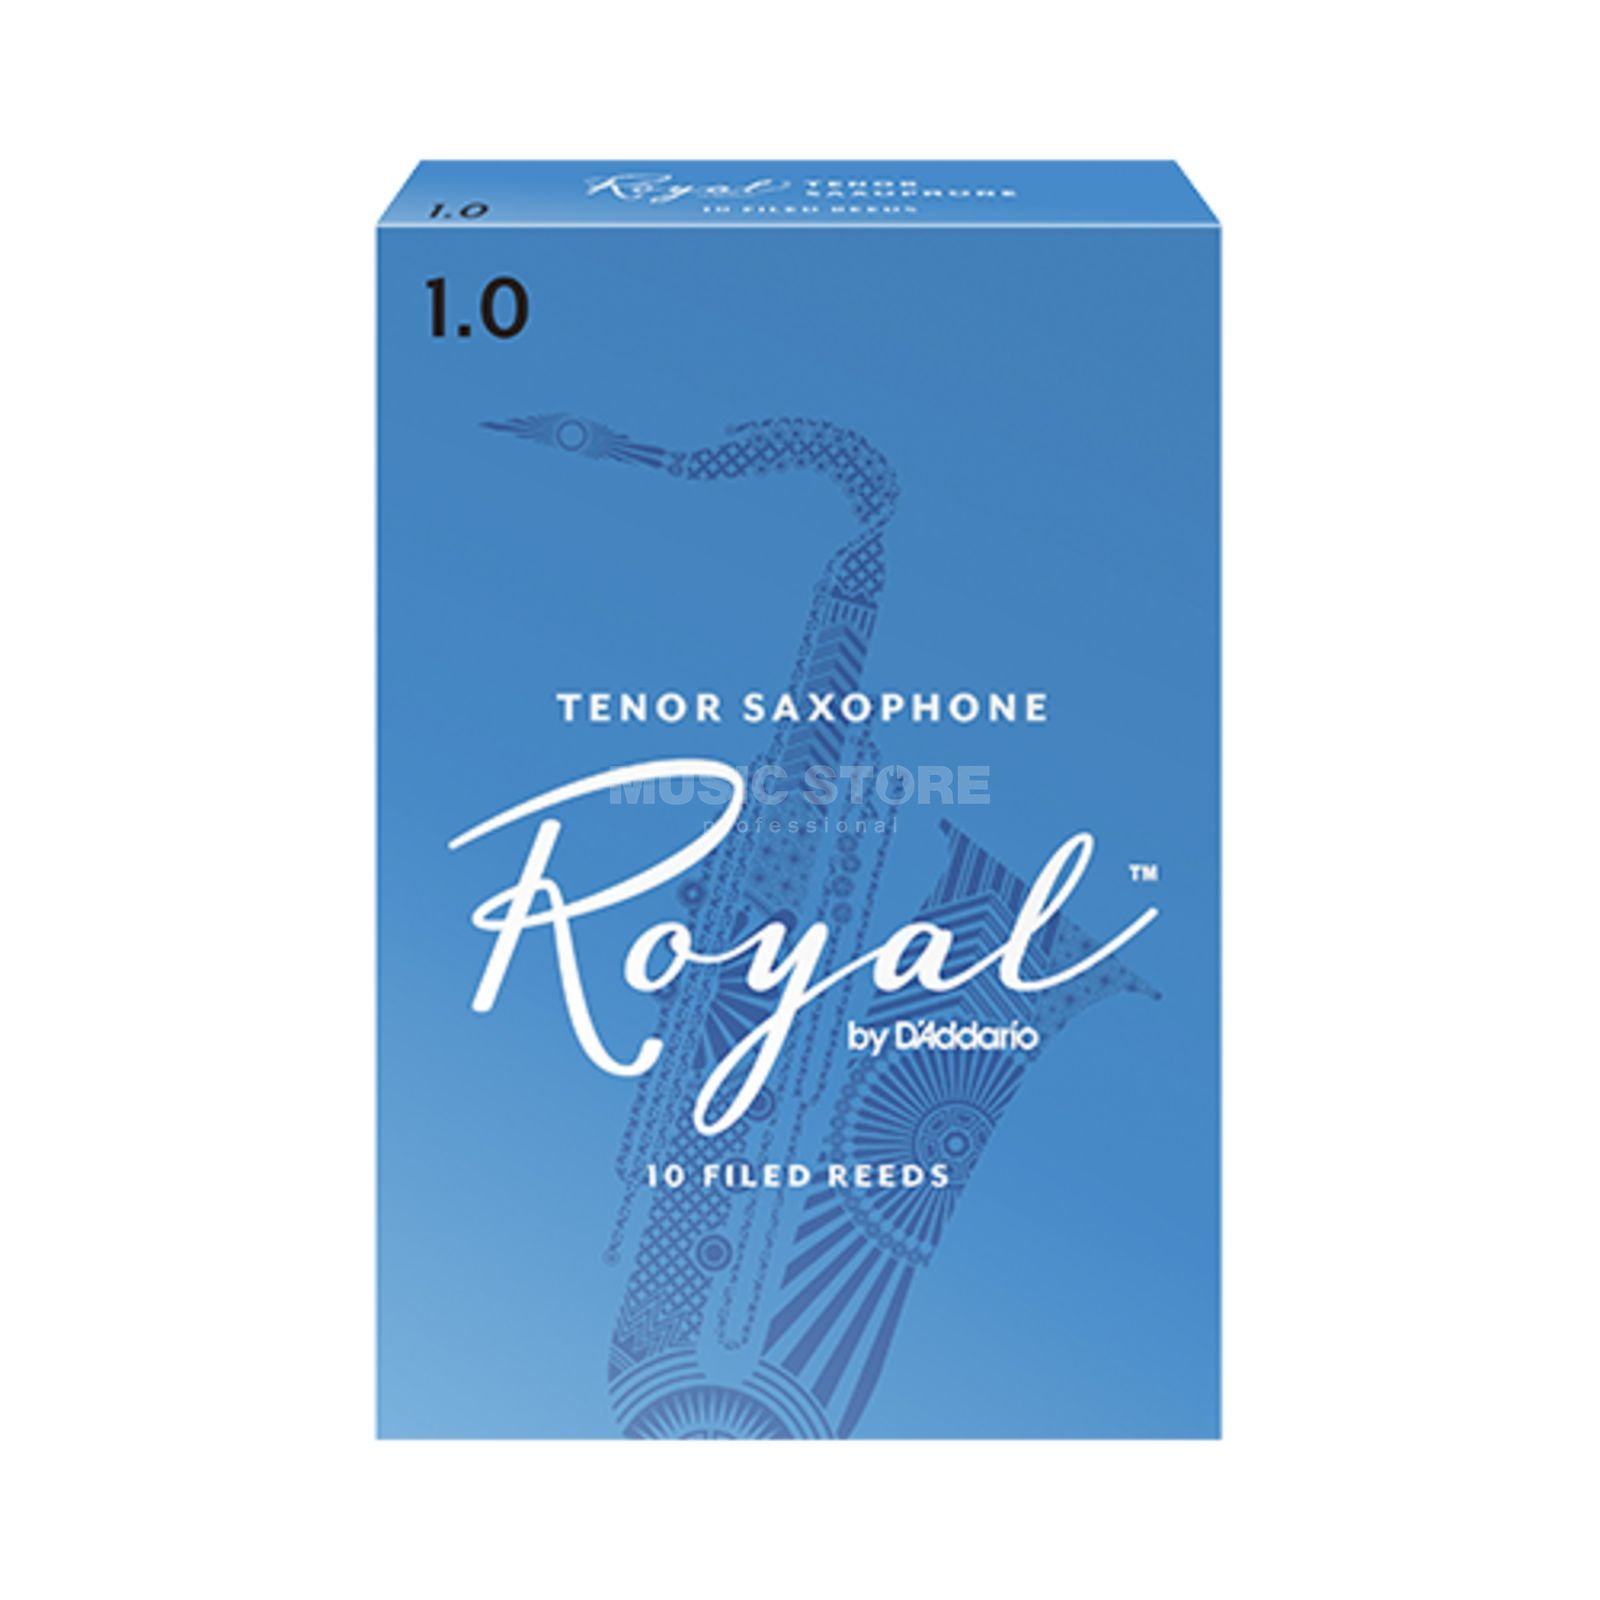 D'Addario Woodwinds Rico Royal 1 Tenor Saxophone Reeds Box of 10 Product Image